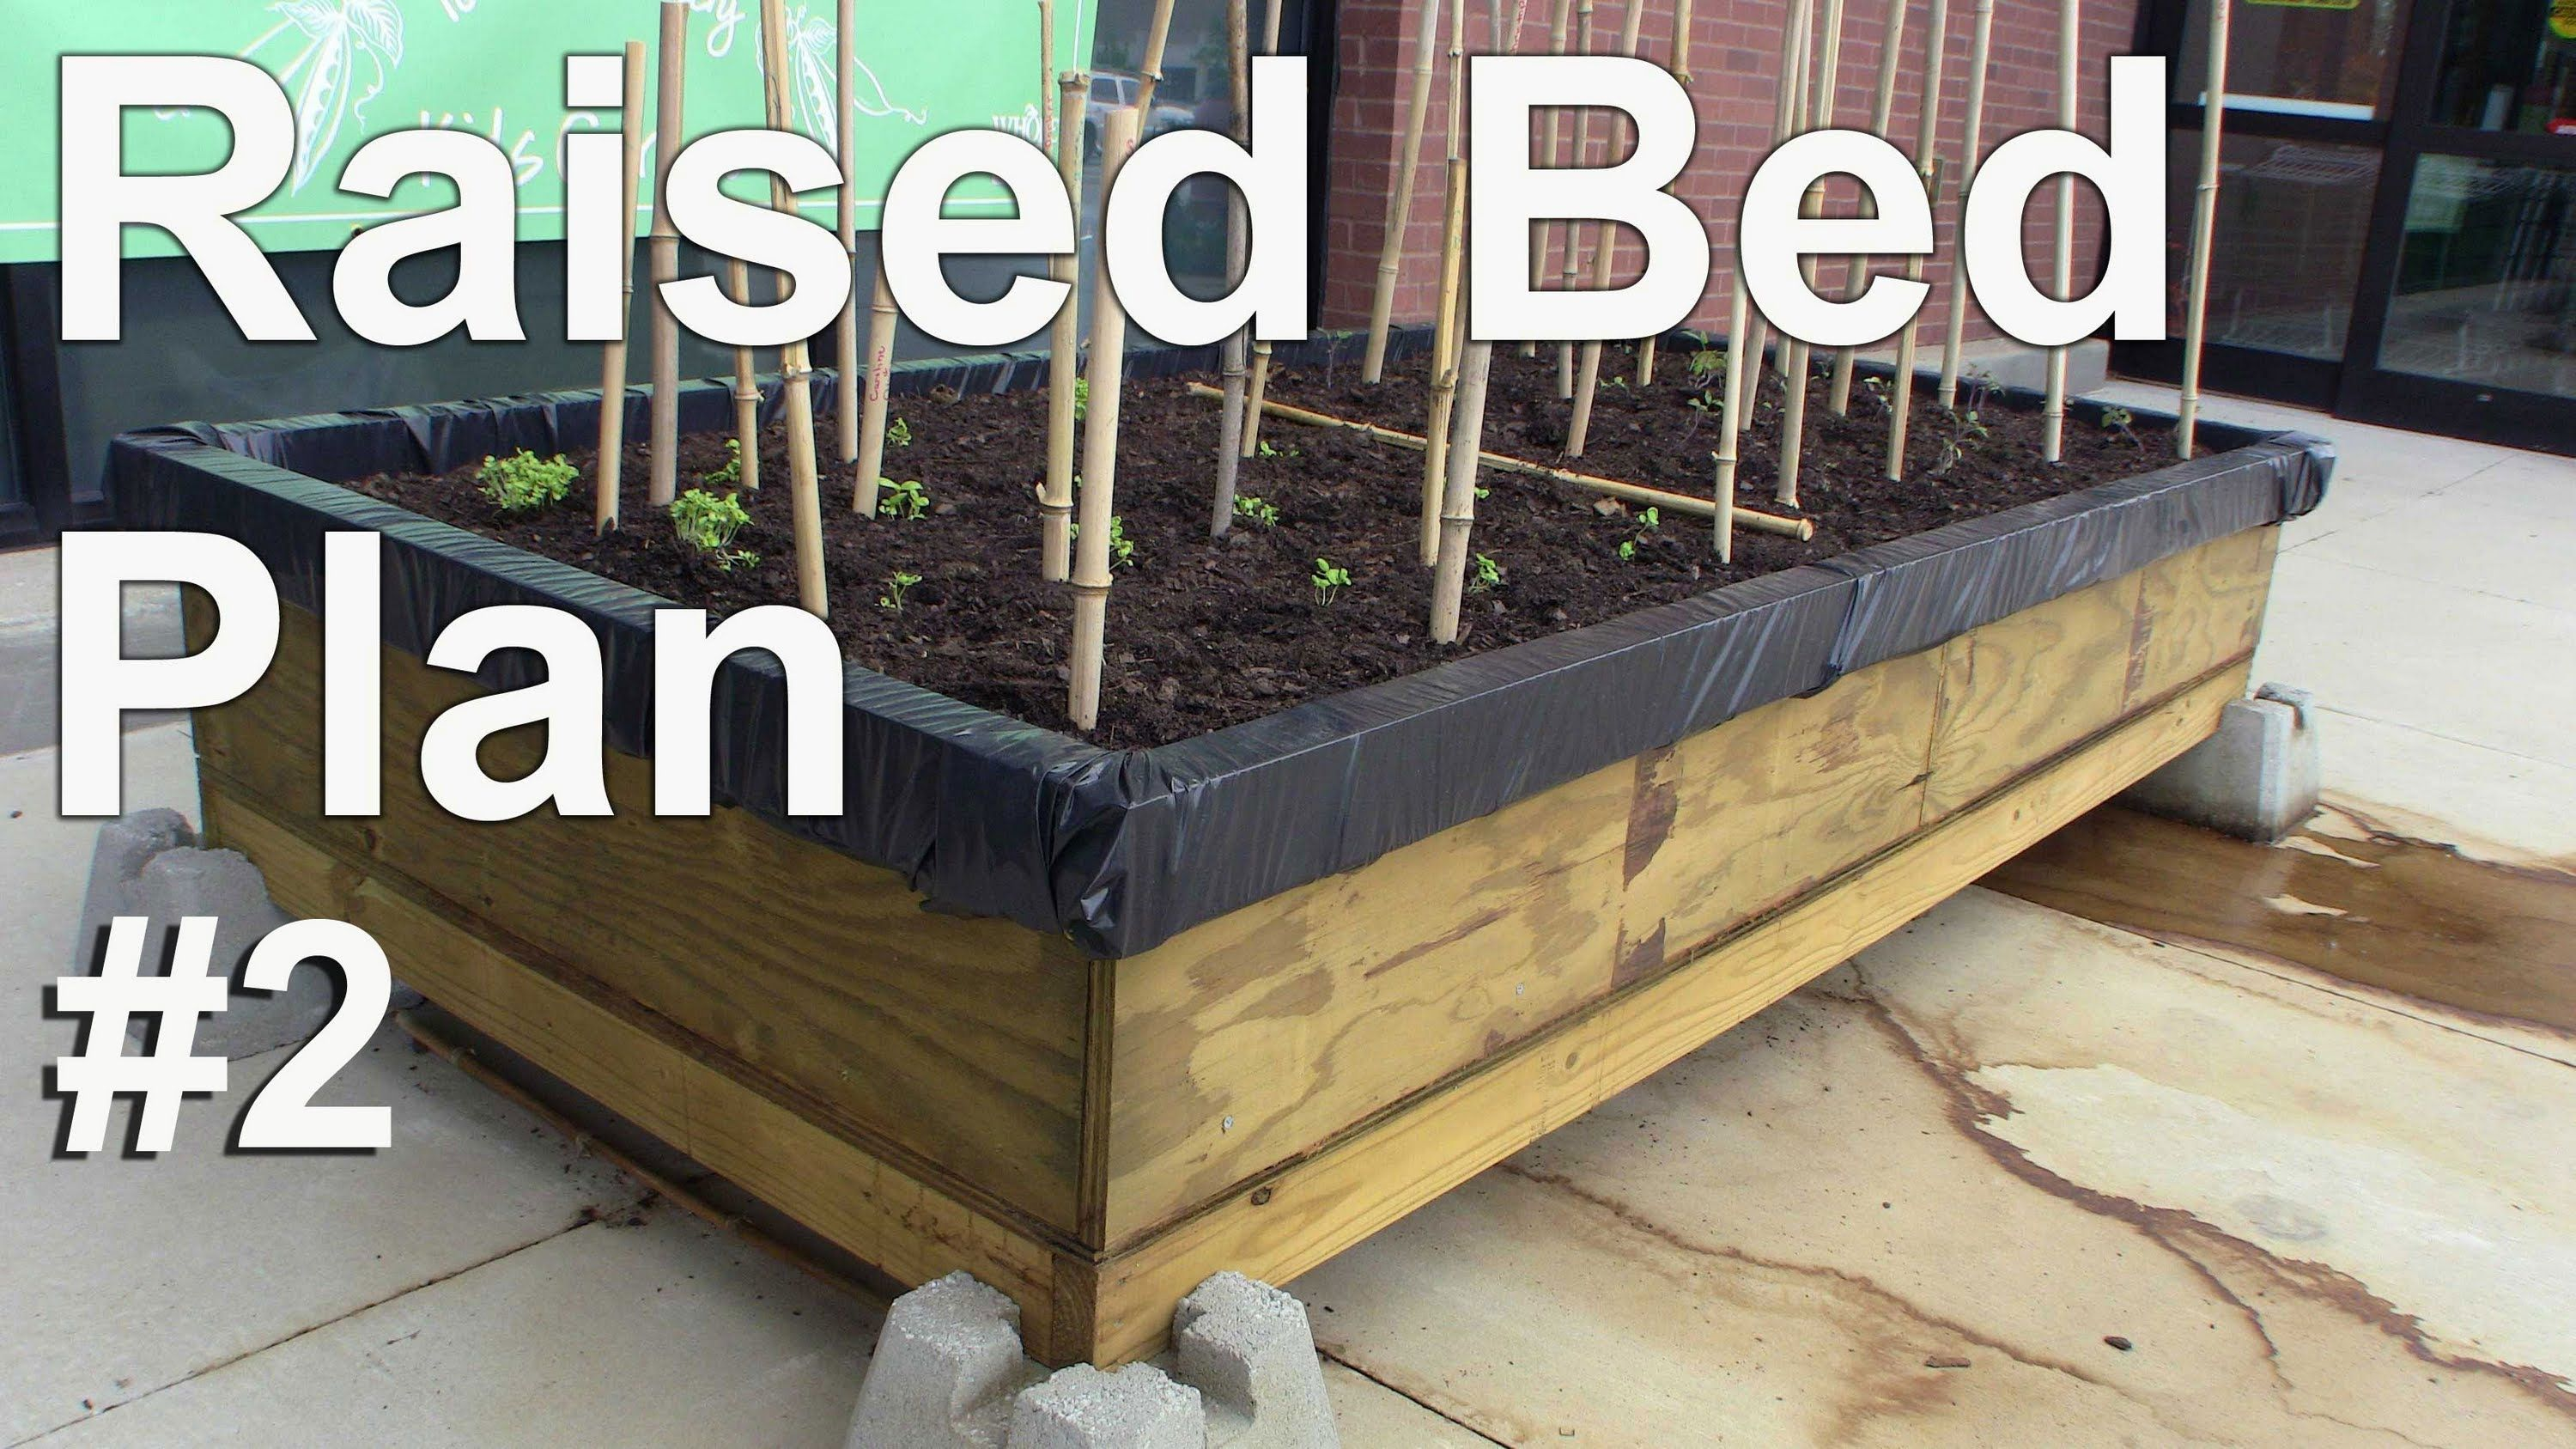 Raised bed plans for gardening on cement schoolyards or contaminated s raised bed - Urban gardening in contaminated areas ...